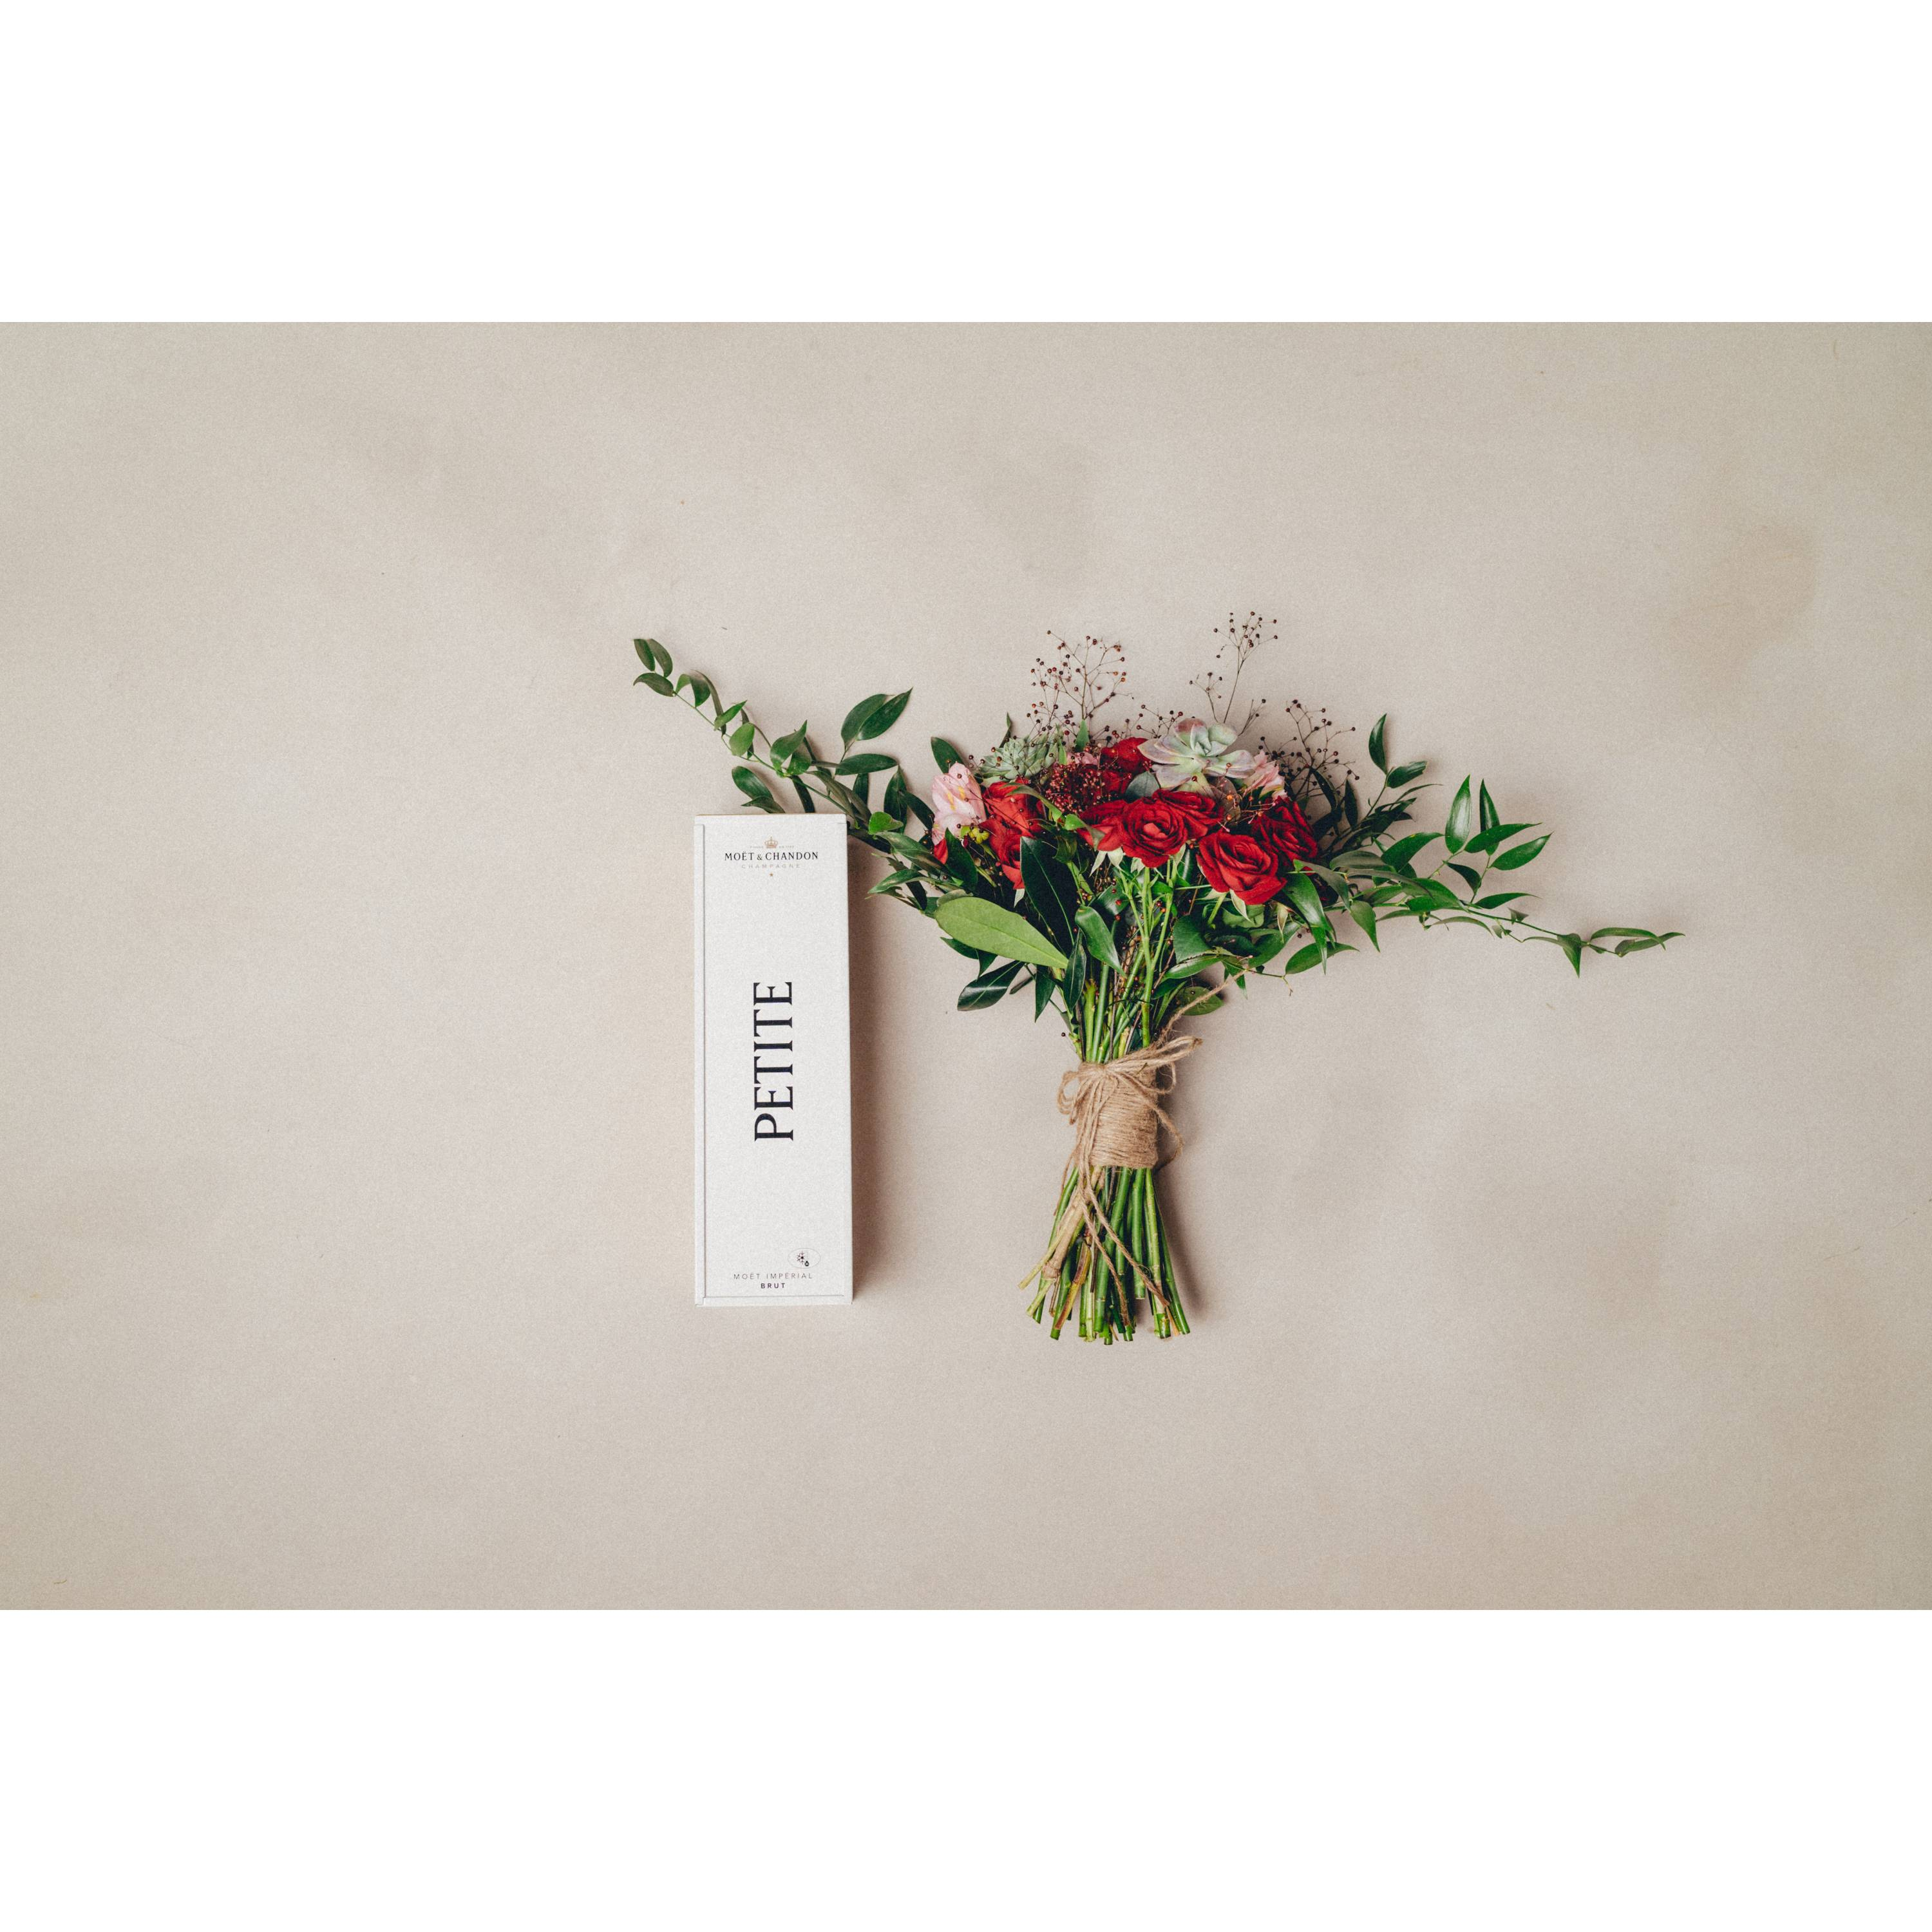 Moët & Chandon Specially Yours Bouquet